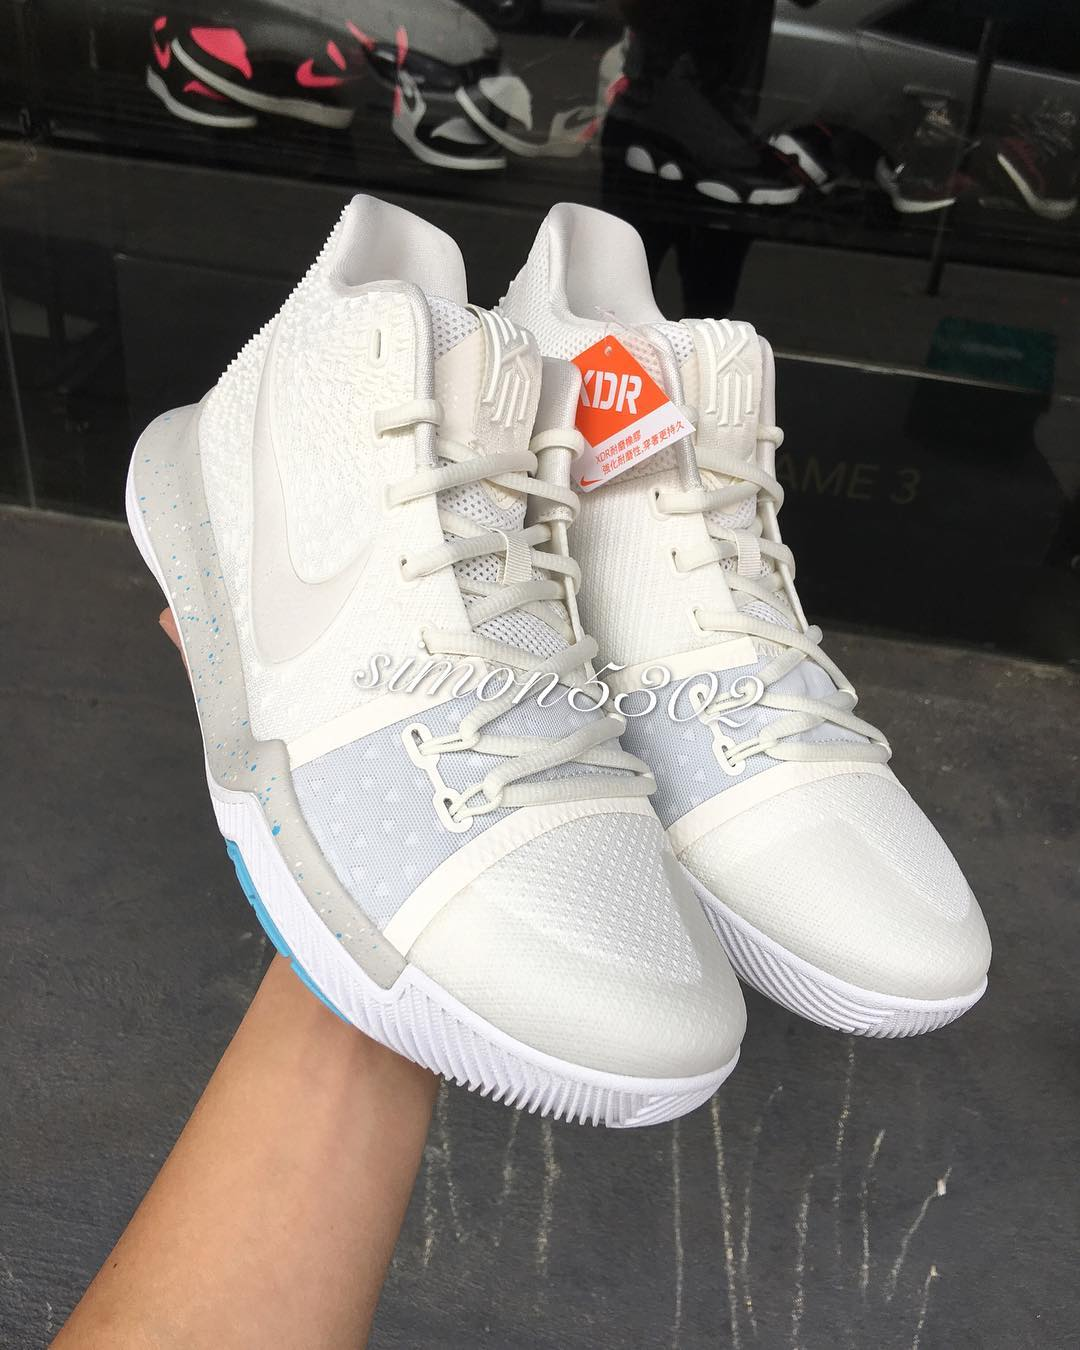 sale retailer a2733 910b9 ... Nike Kyrie 3 Ivory Release Date 852395-101 (7) ...